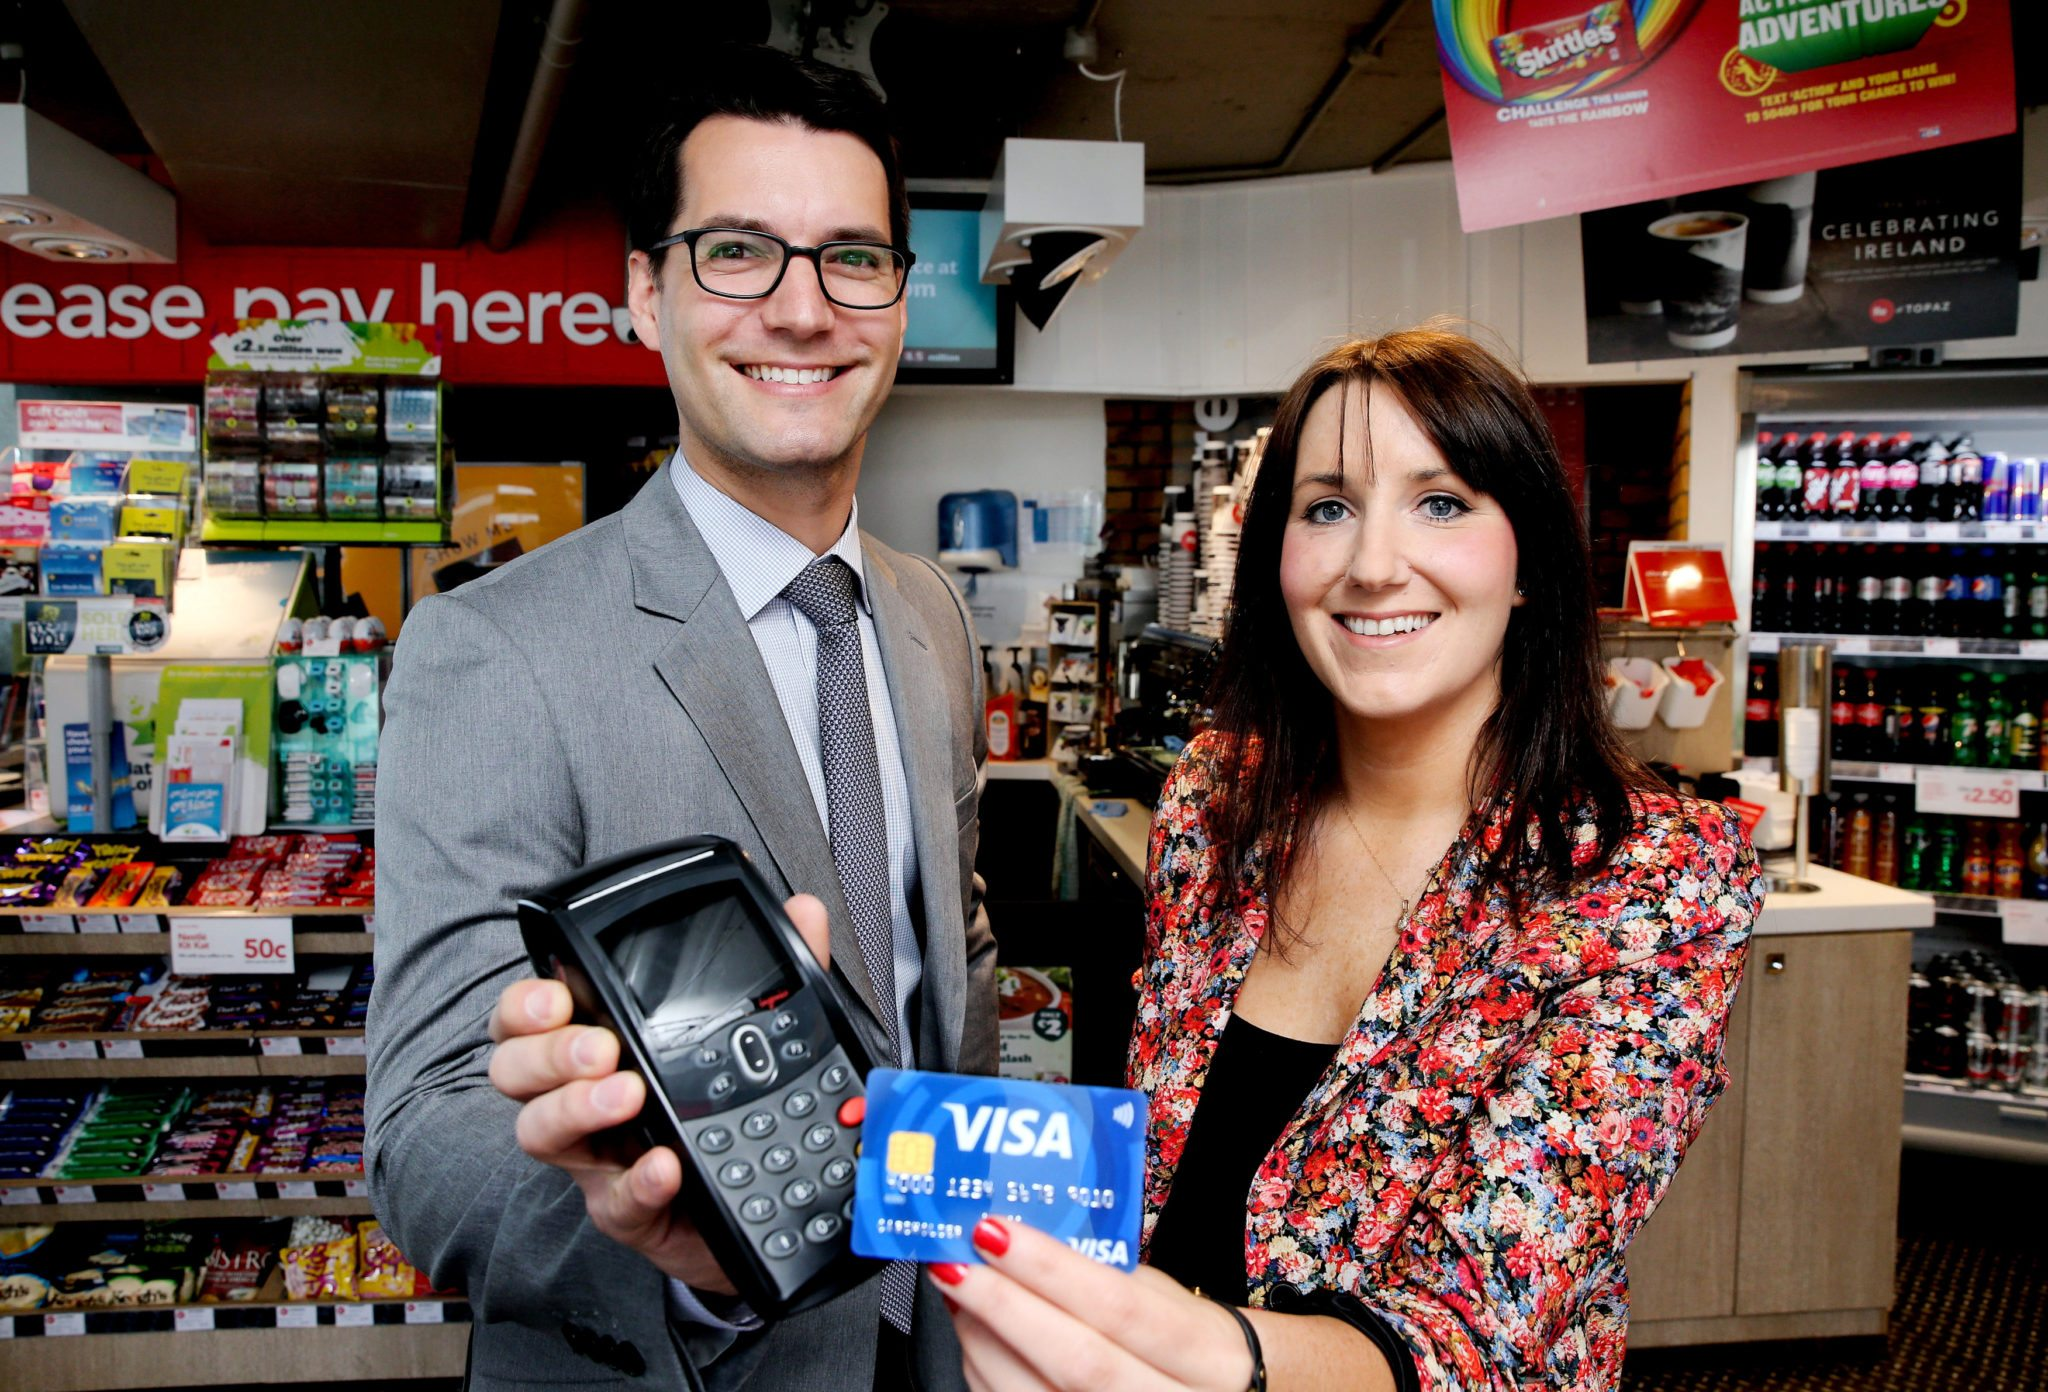 Retailers applaud new £100 contactless limit, banks are wary